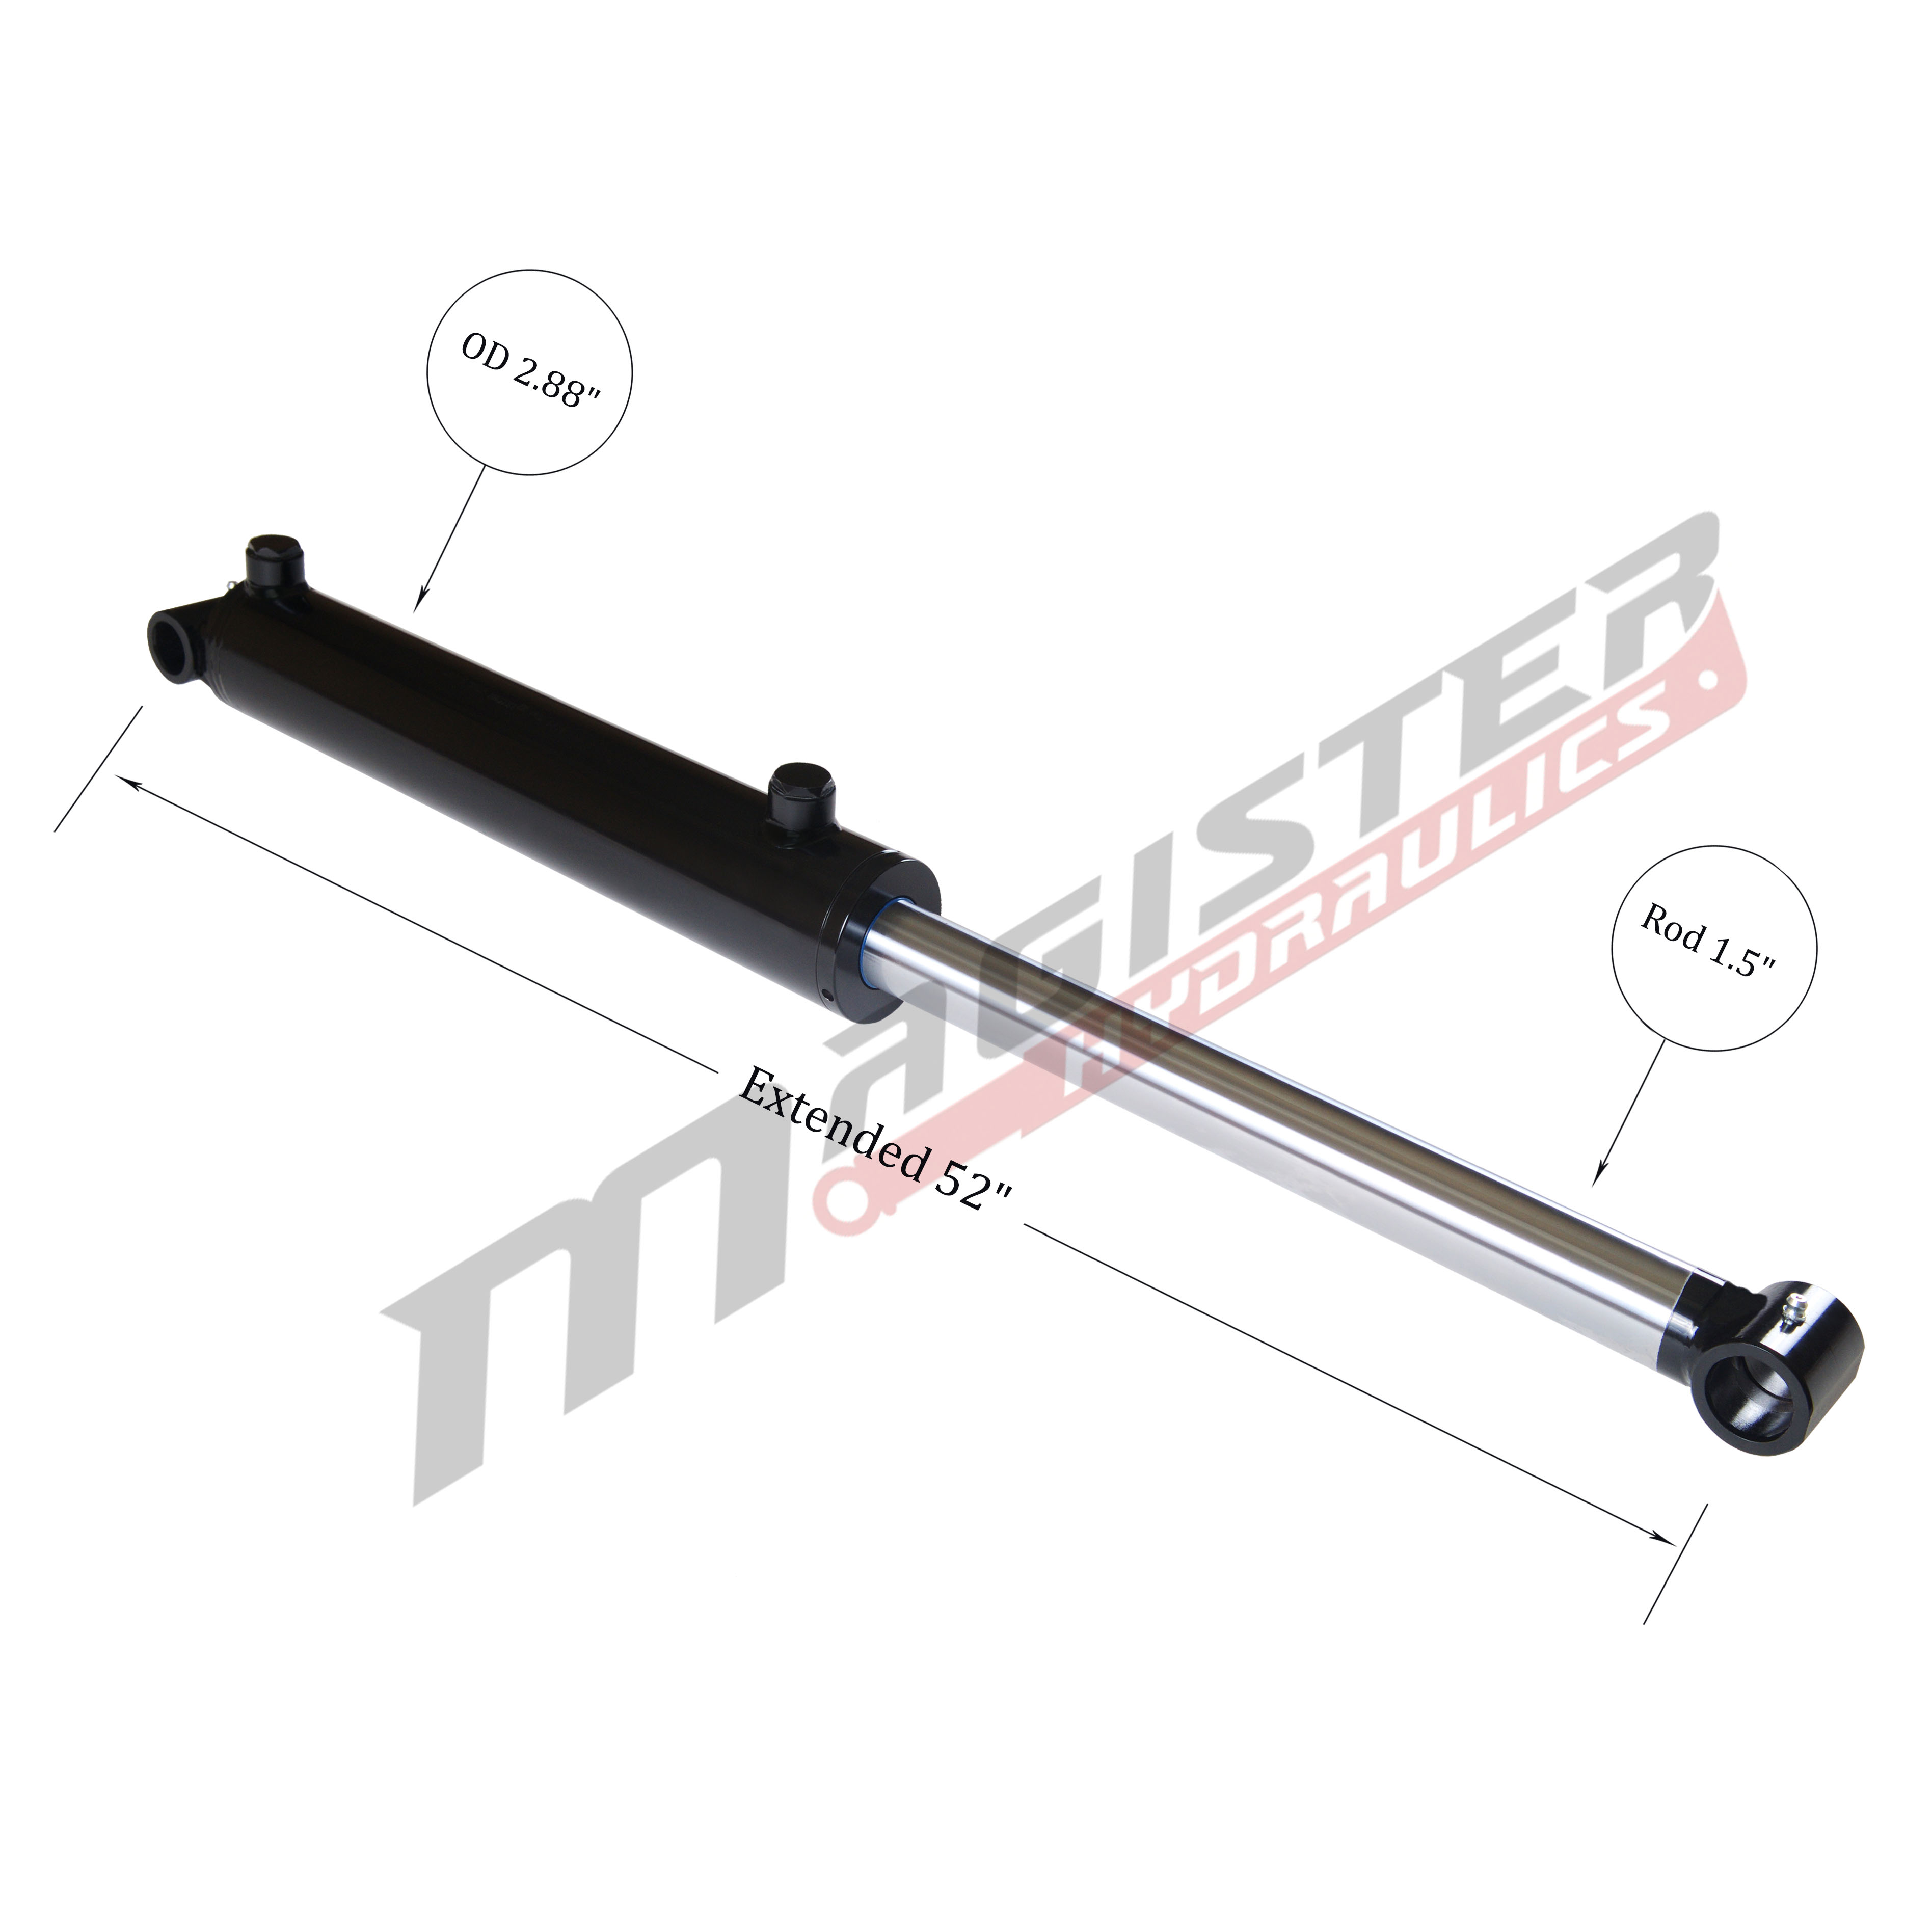 2.5 bore x 22 stroke hydraulic cylinder, welded cross tube double acting cylinder | Magister Hydraulics